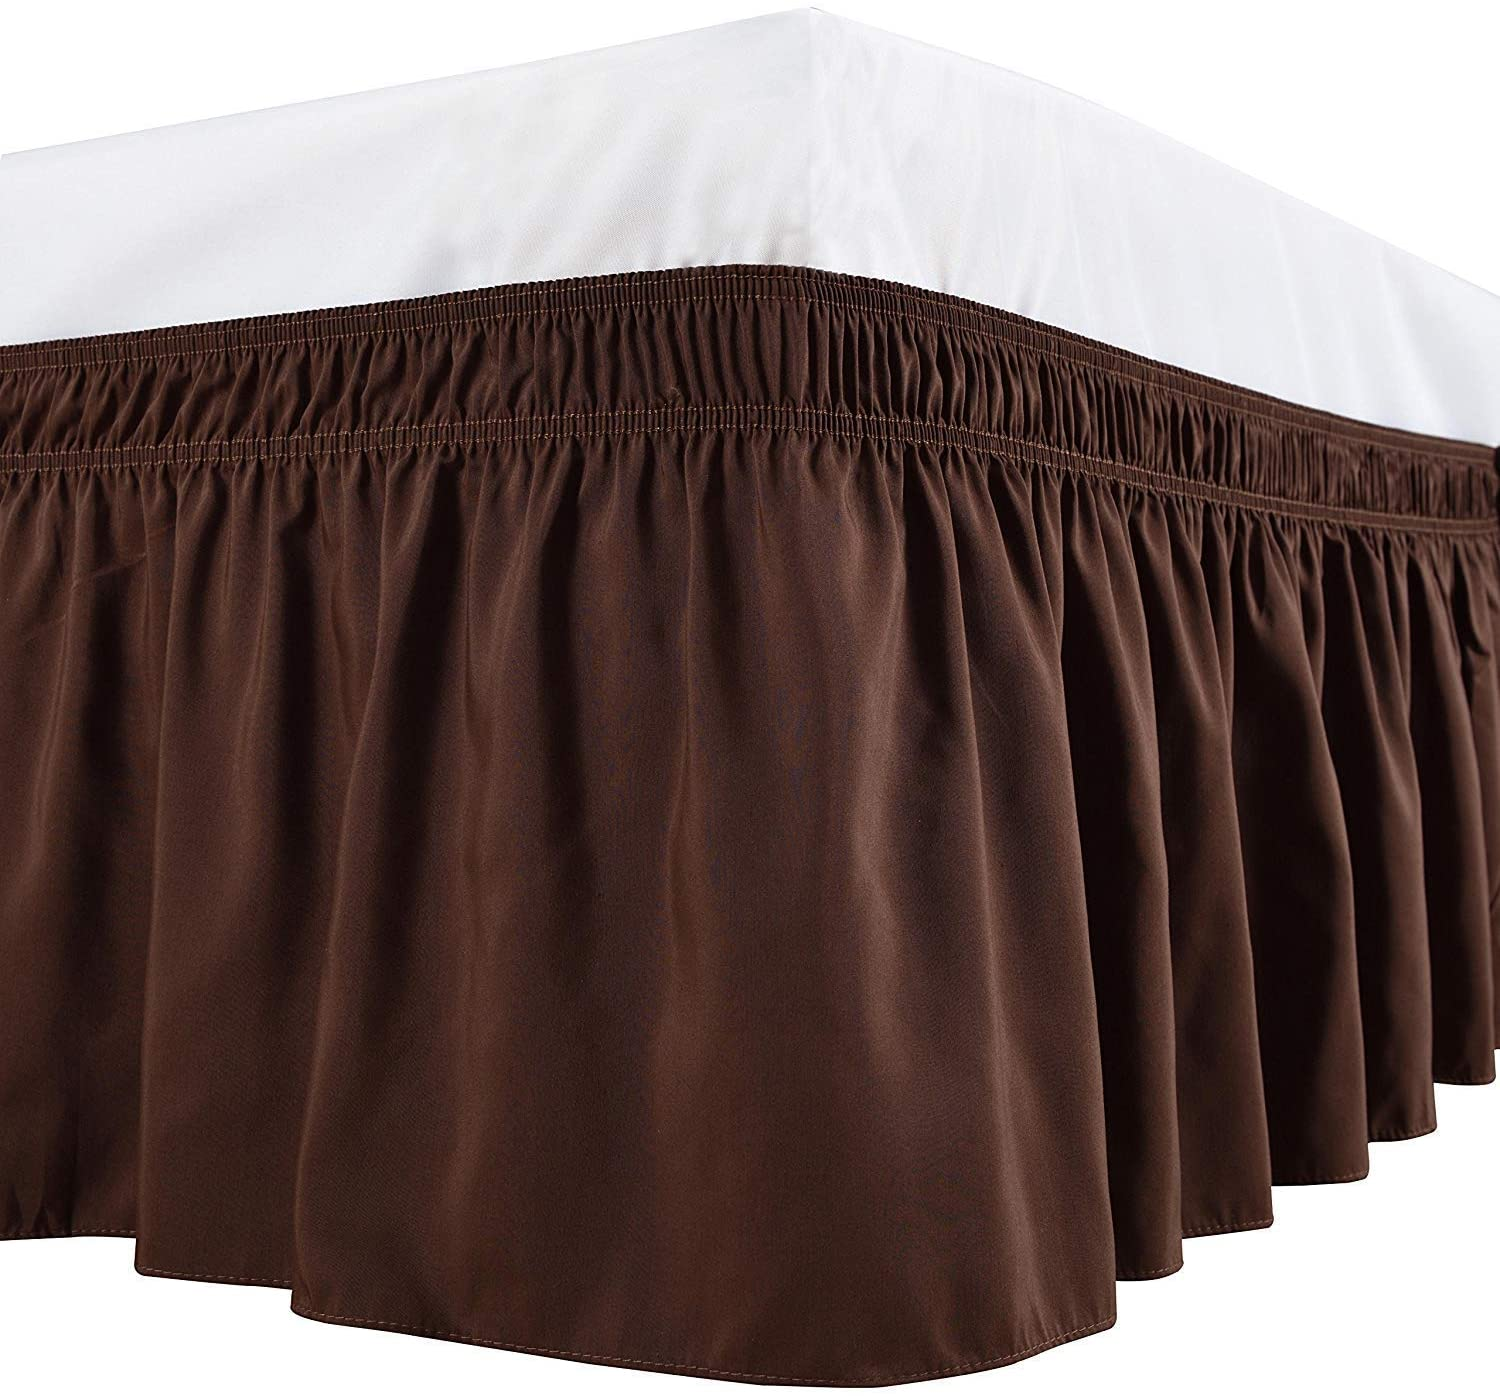 Elegant Linen Store 1 Wrap Around Bed Skirt, Elastic Dust Ruffles, Easy Fit Wrinkle and Fade Resistant Pattern Solid 100% Egyptian Cotton 650 TC, 19 inch Drop Length, Size Queen, Chocolate